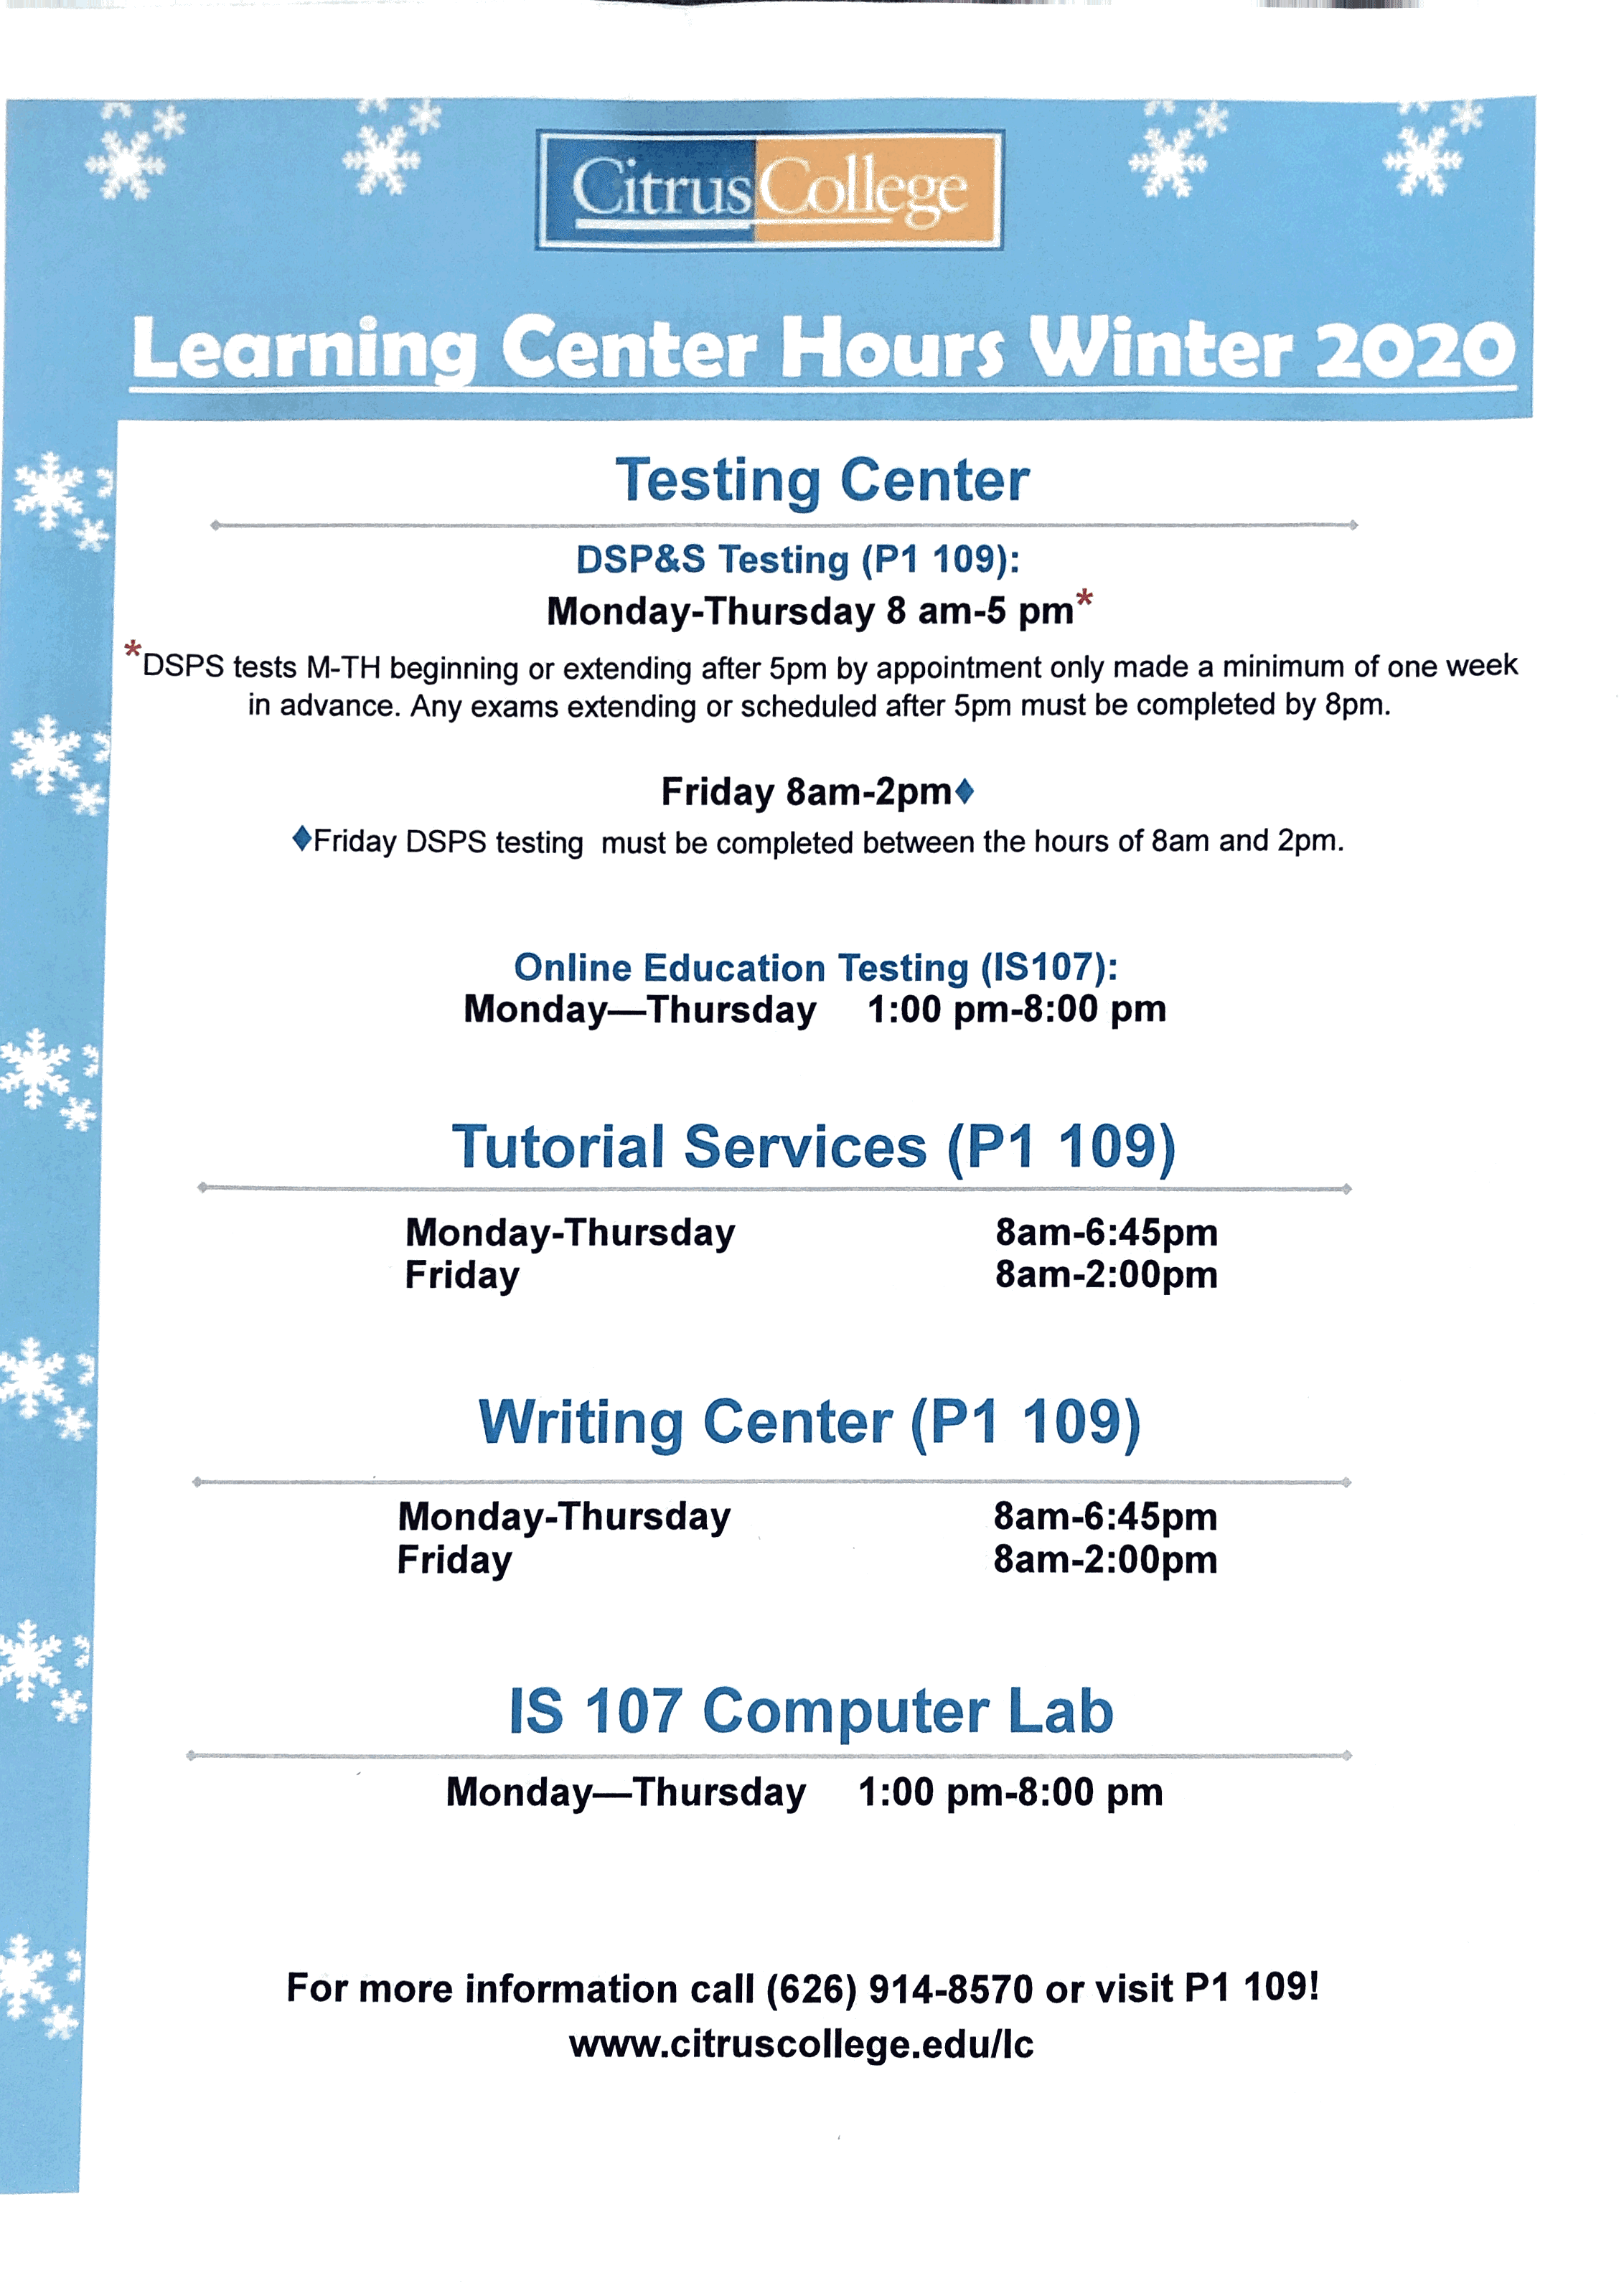 Learning and Writing Center Winter 2020 Hours